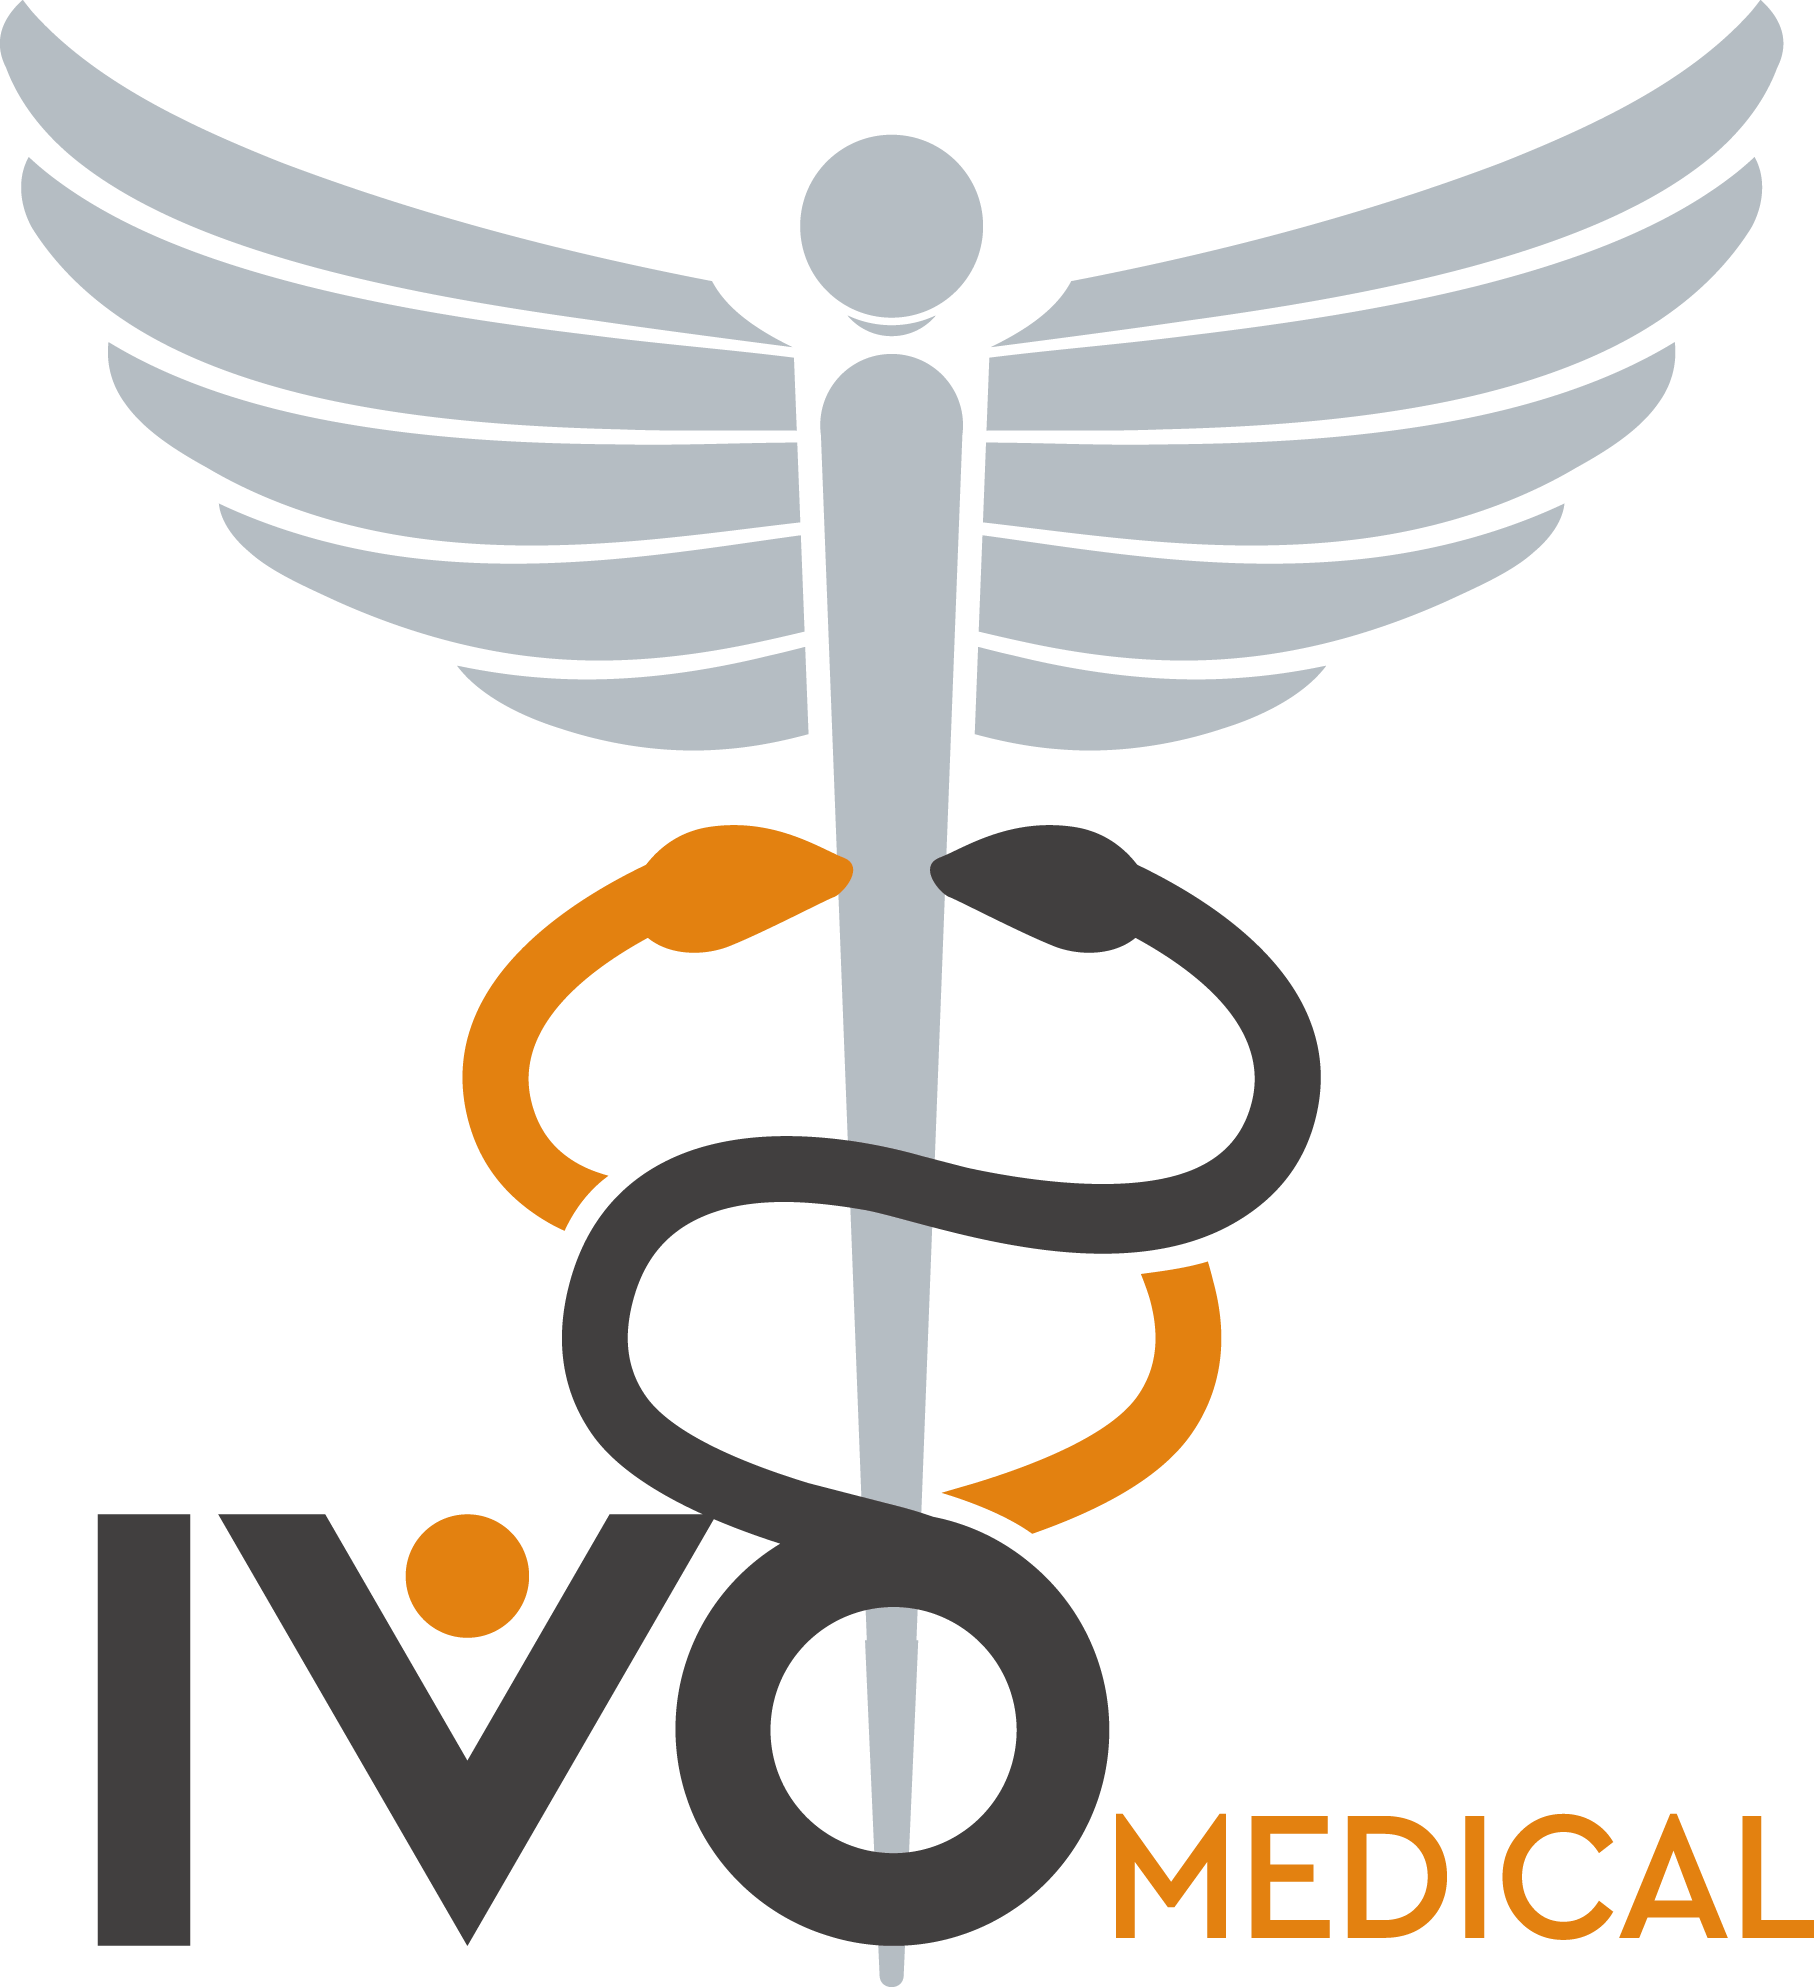 LOGO IVO MEDICAL ACTUAL